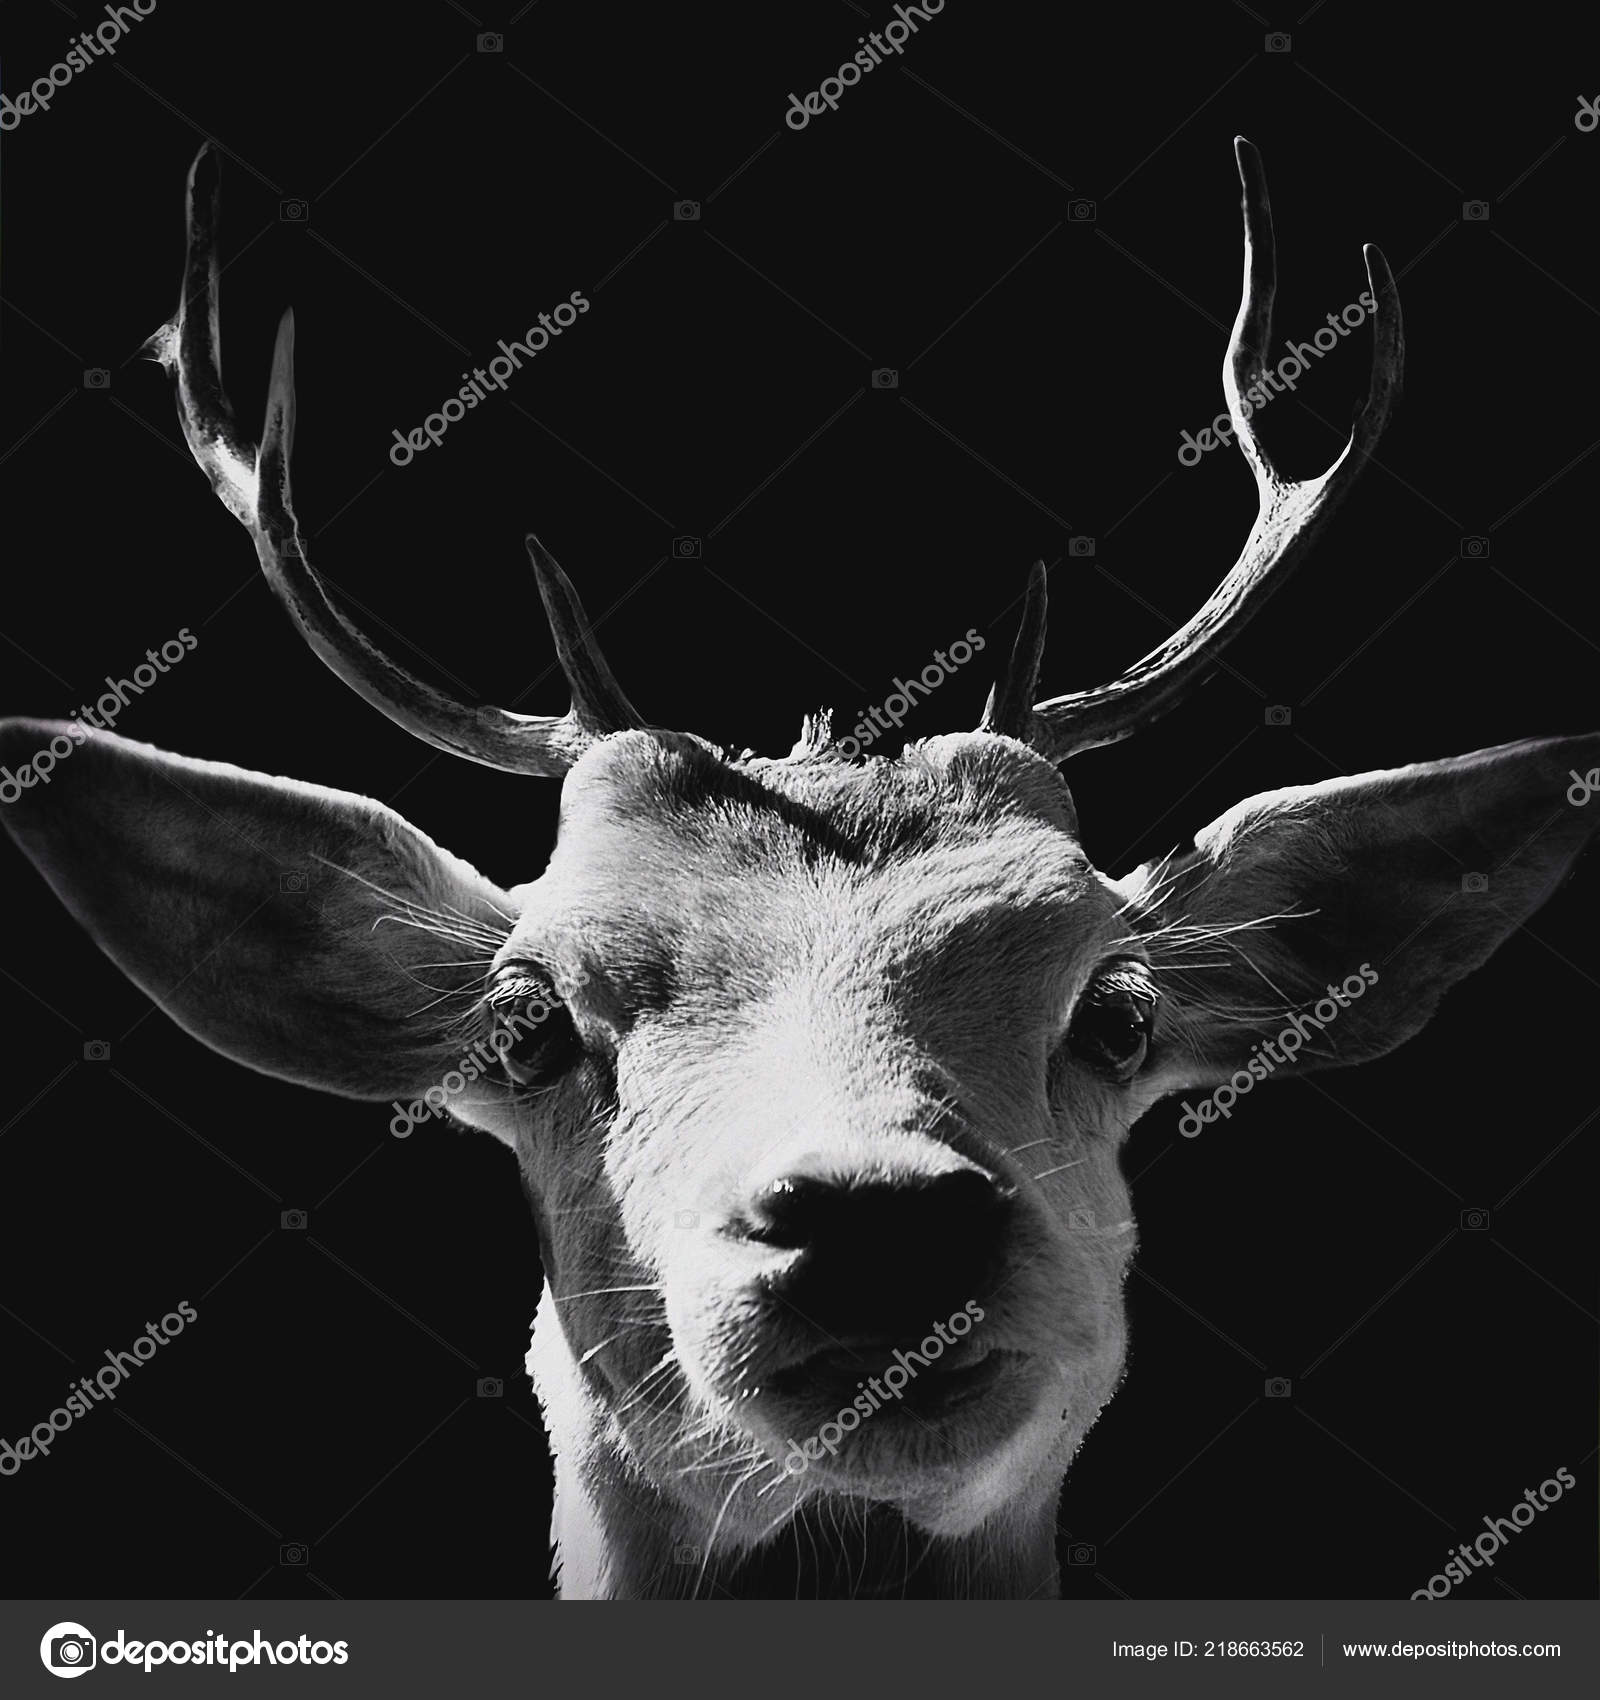 Black and white high contrast animal art portrait of a goat isolated in shadows